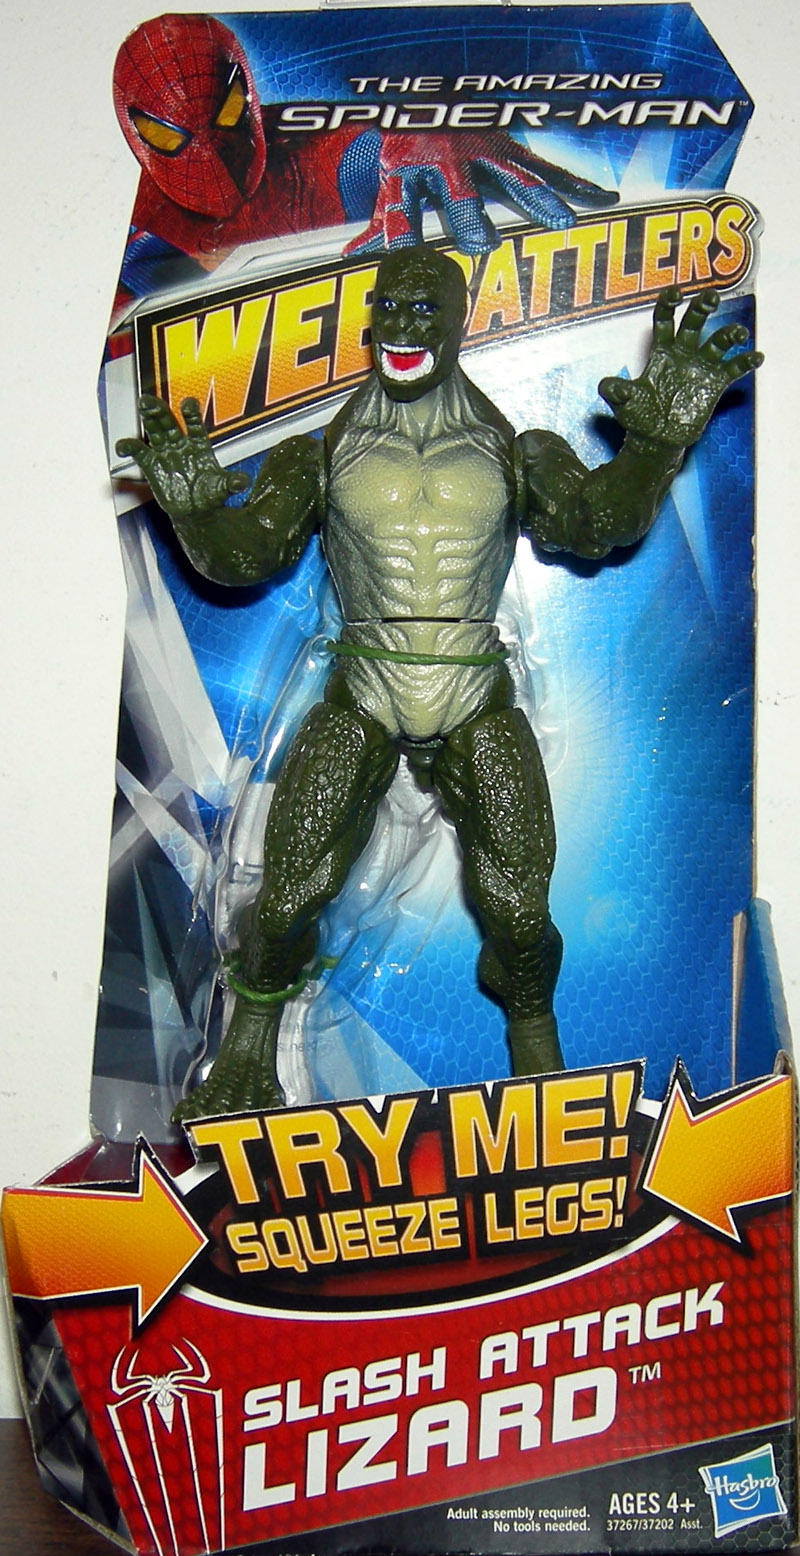 Slash Attack Lizard (Web Battlers, The Amazing Spider-Man Movie)